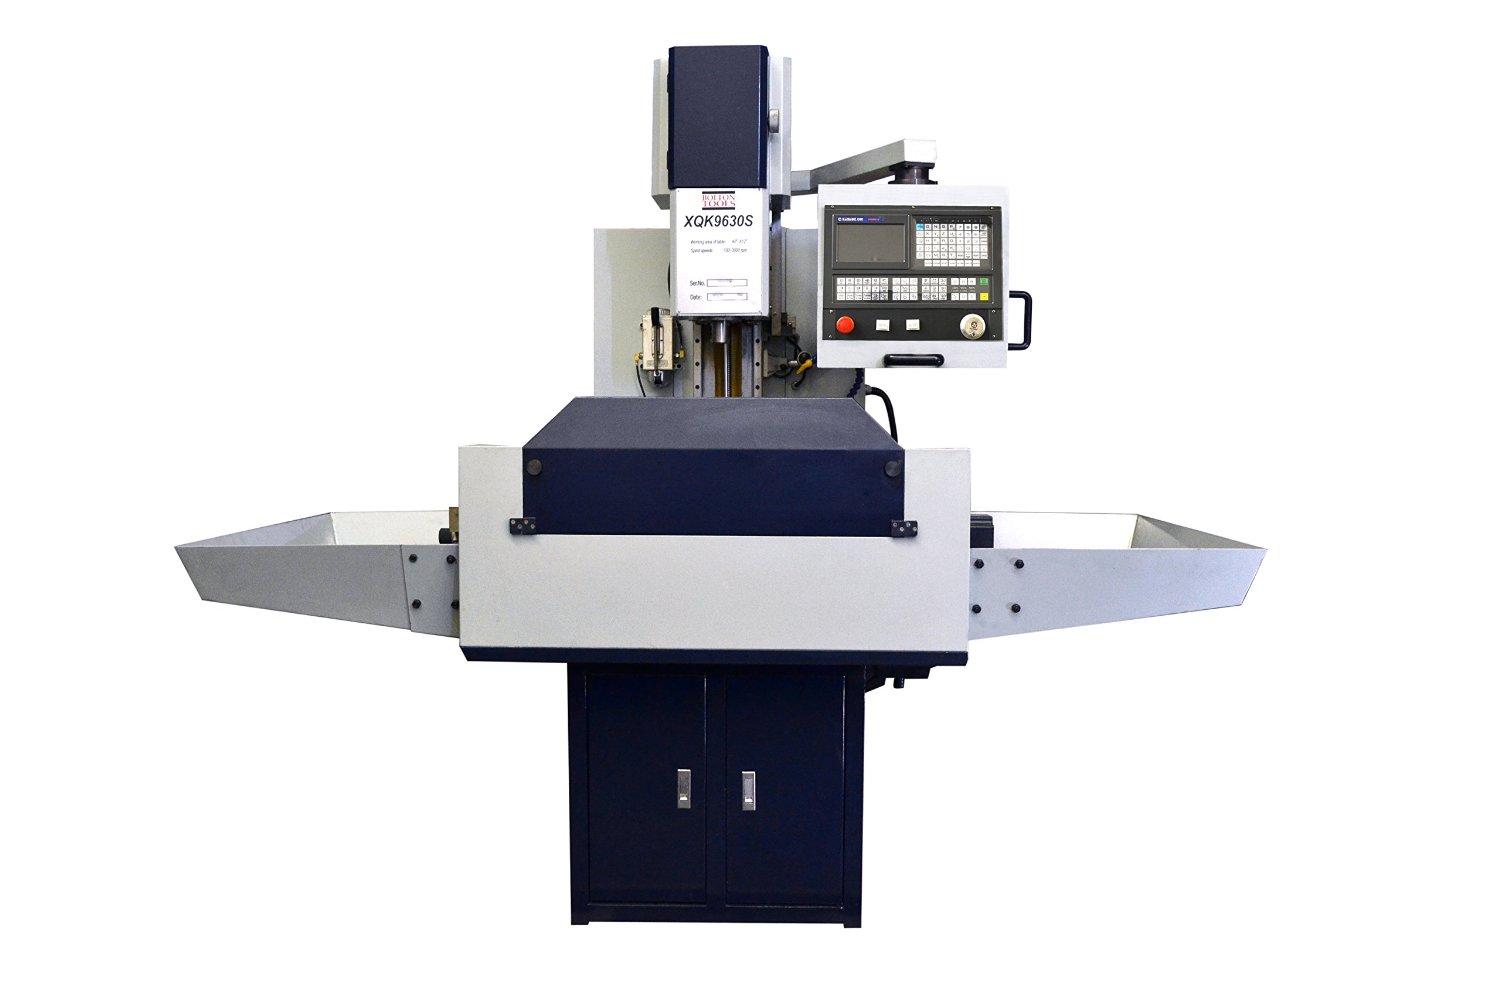 Bolton 4 Axis CNC Milling Machine 118x394 Table Size